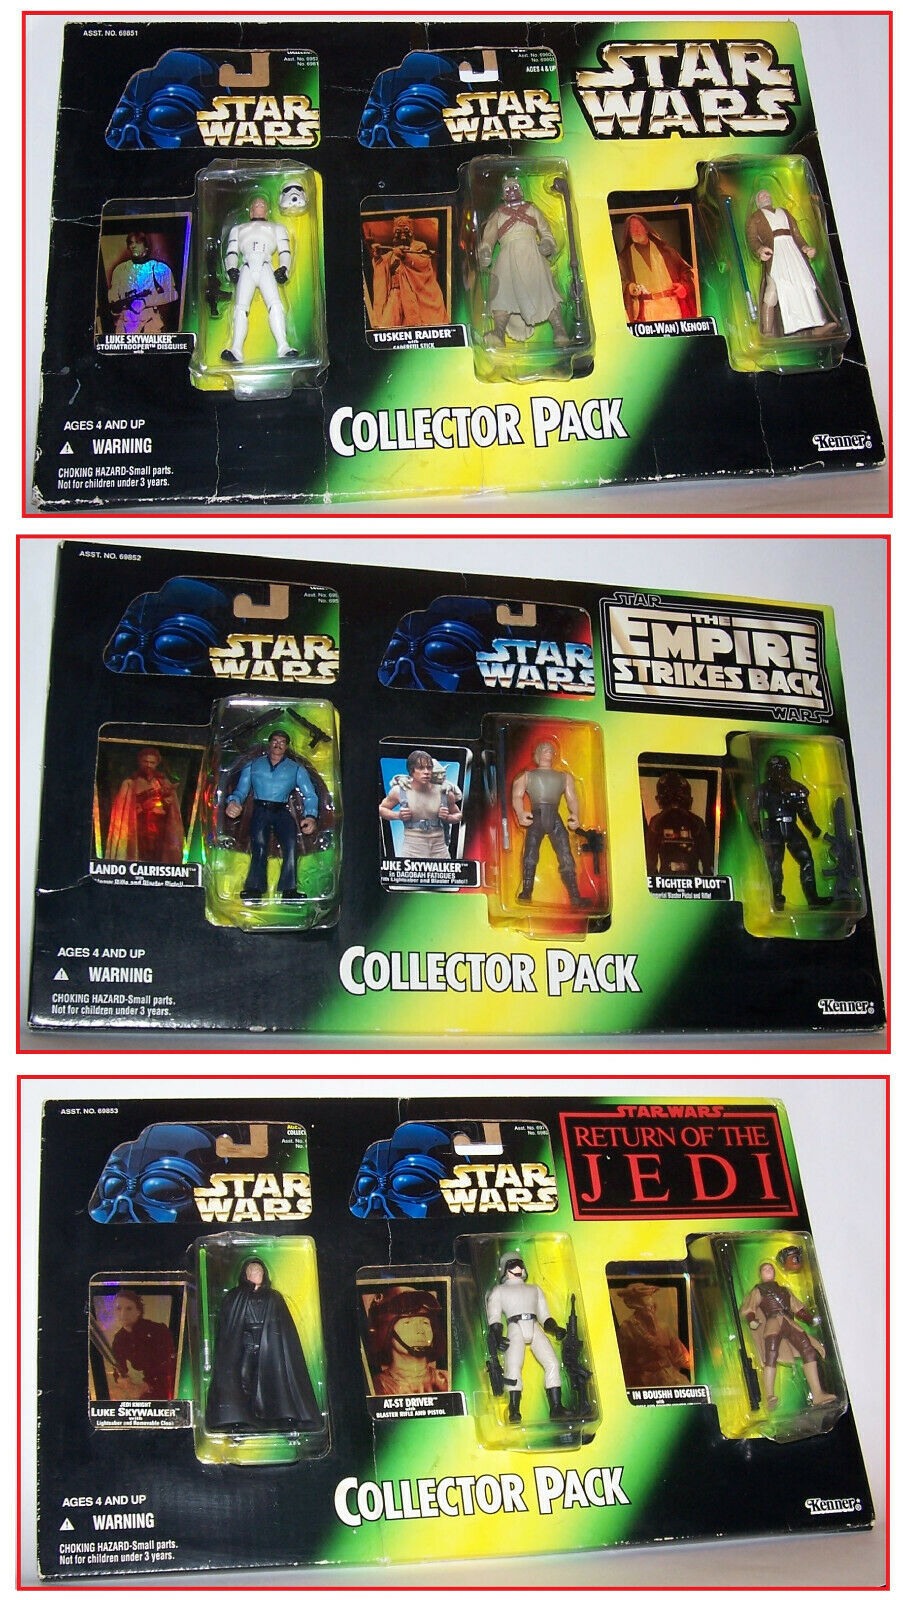 3 Vintage 1997 Star Wars Power of the Force POTF2 Collector 3 Pack Sets